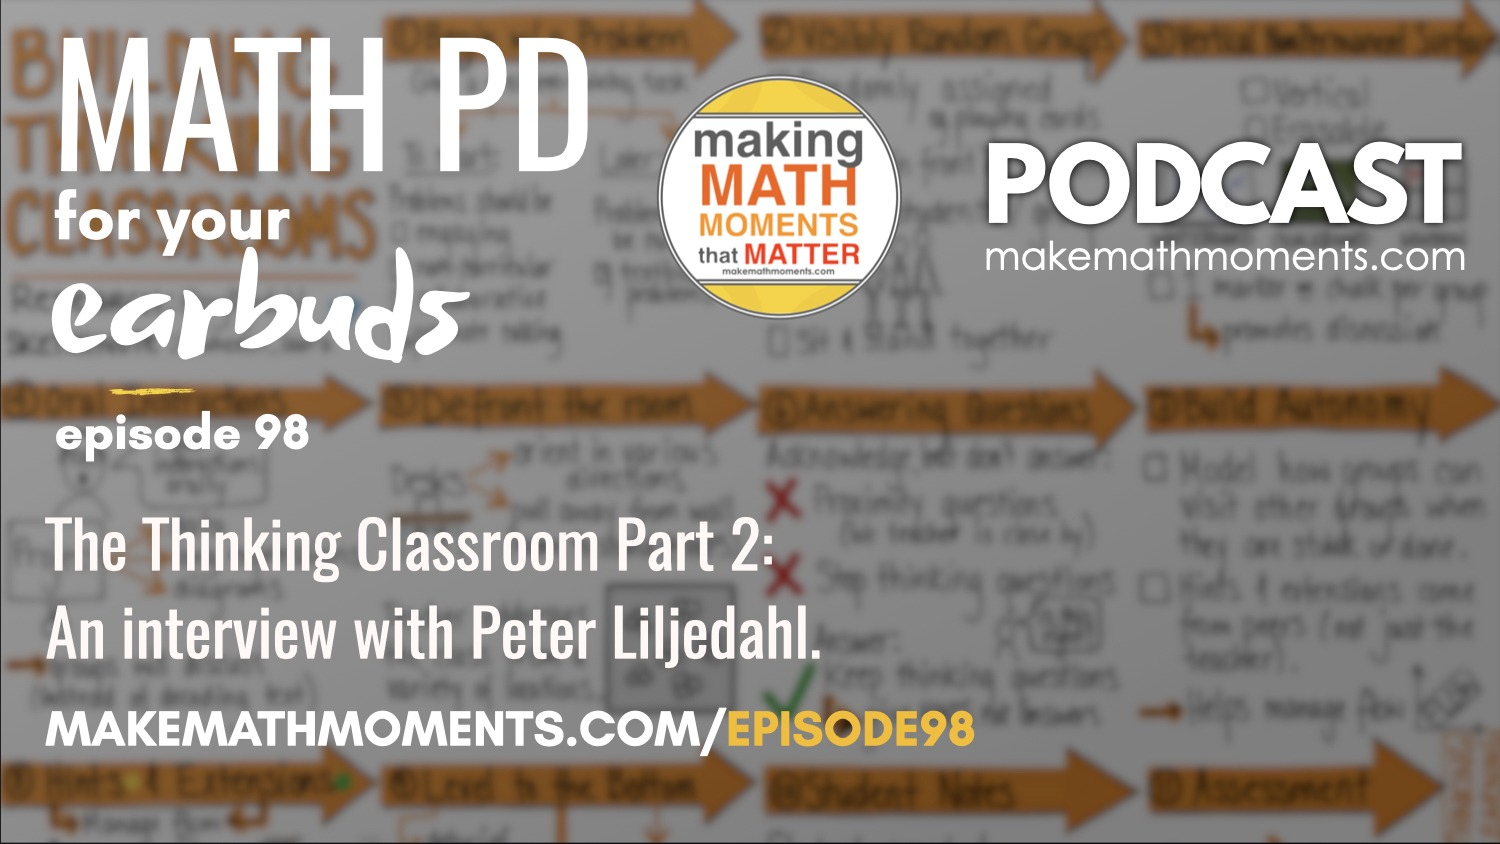 Episode #98: The Thinking Classroom Part 2: An interview with Peter Liljedahl